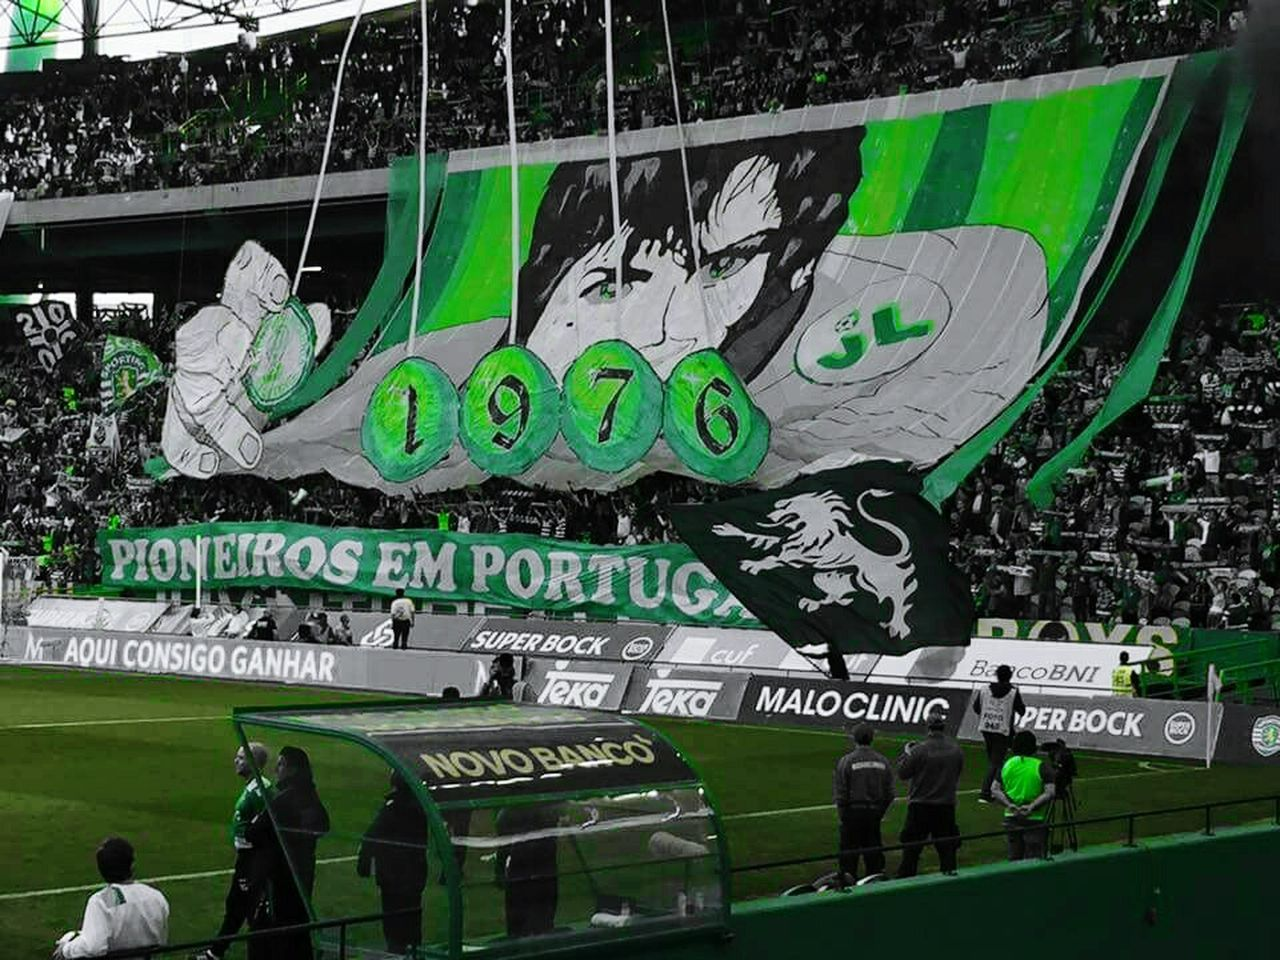 Primeiro A Nascer, Últimos A Morrer 41° Juventude Leonina Personal Perspective Getty Images EeYem Best Shots Enjoying The View EyeEm Best Shots Eeyem Photography Lisbon - Portugal Lisbonlovers Football Stadium Jl76 Pyro Fans Futebol Football Fever Stadium Juventudeleonina Football Fans Color Explosion Graffiti Art Graffiti Taking Photos Eyeem Market